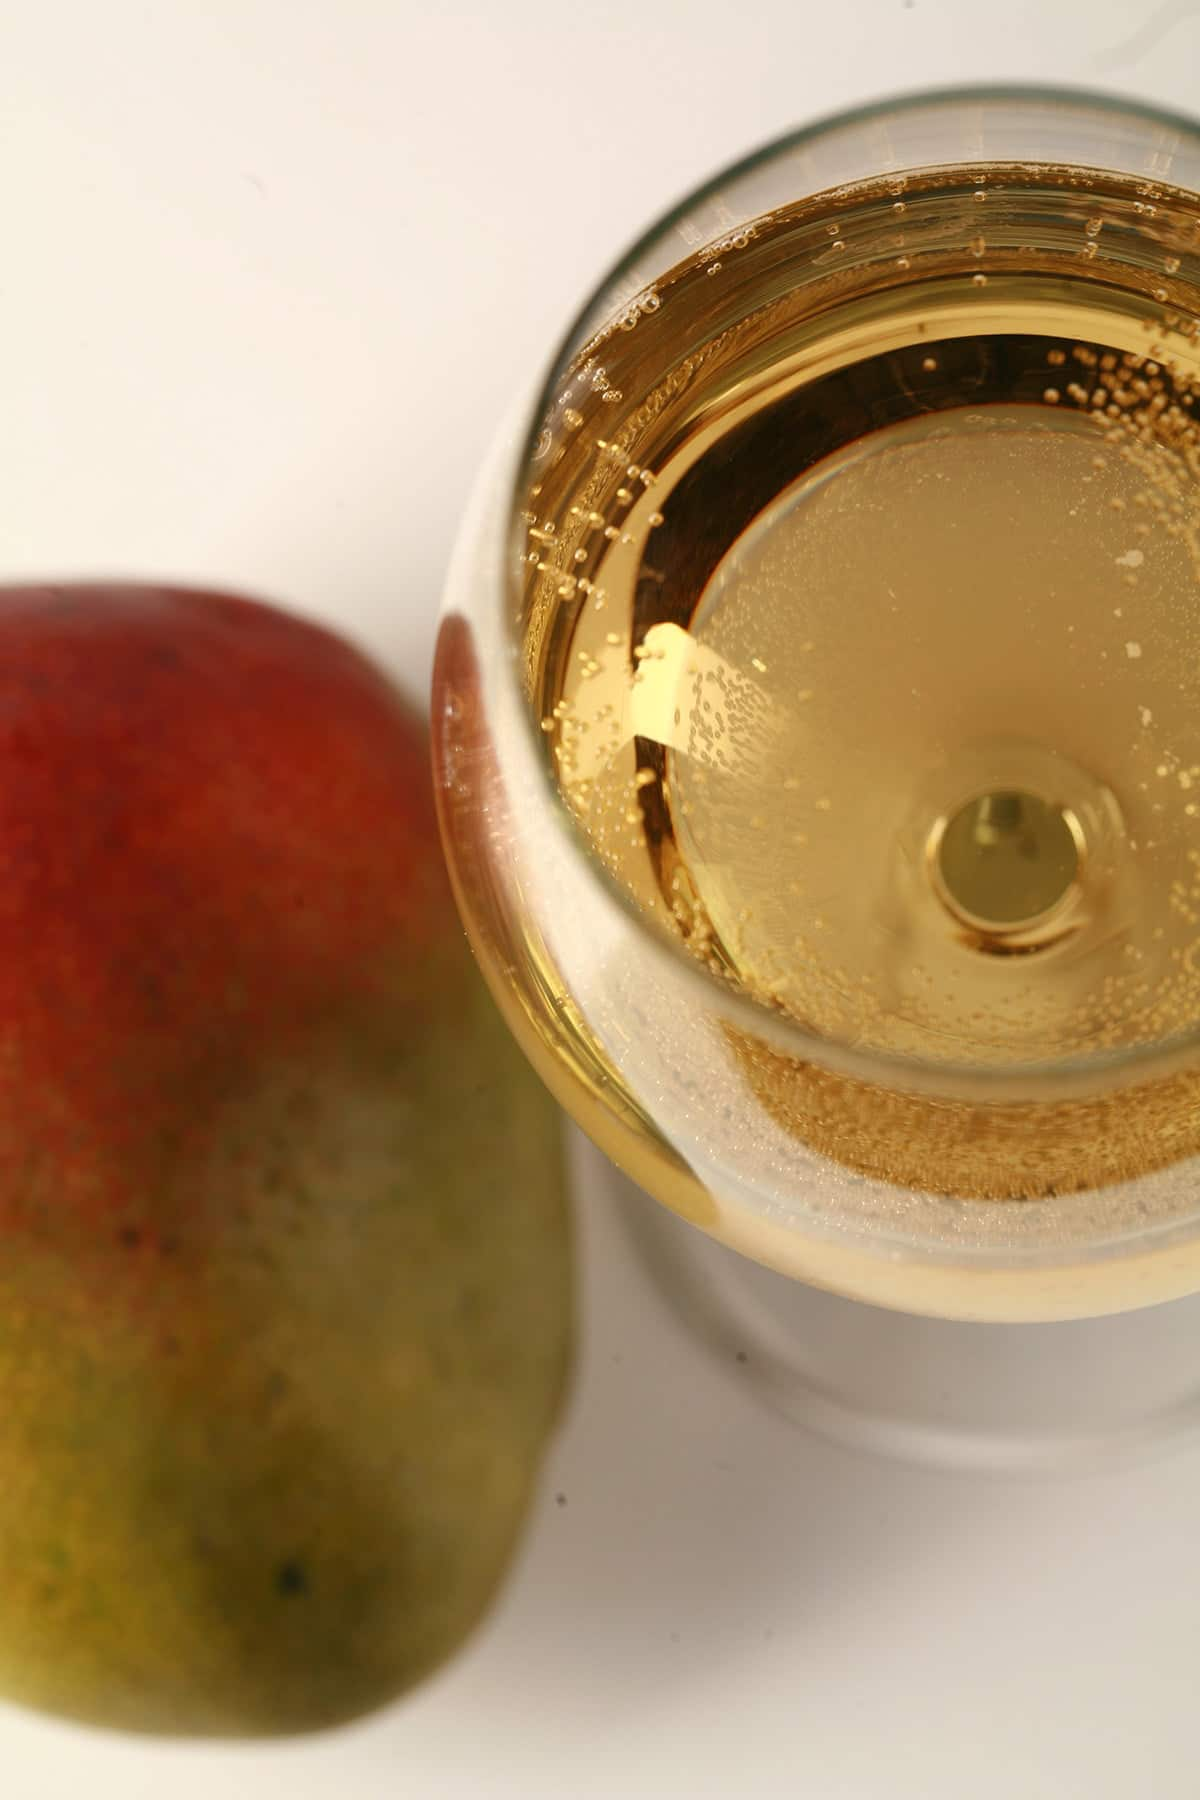 A glass of straw coloured mango wine is pictured next to a whole mango.